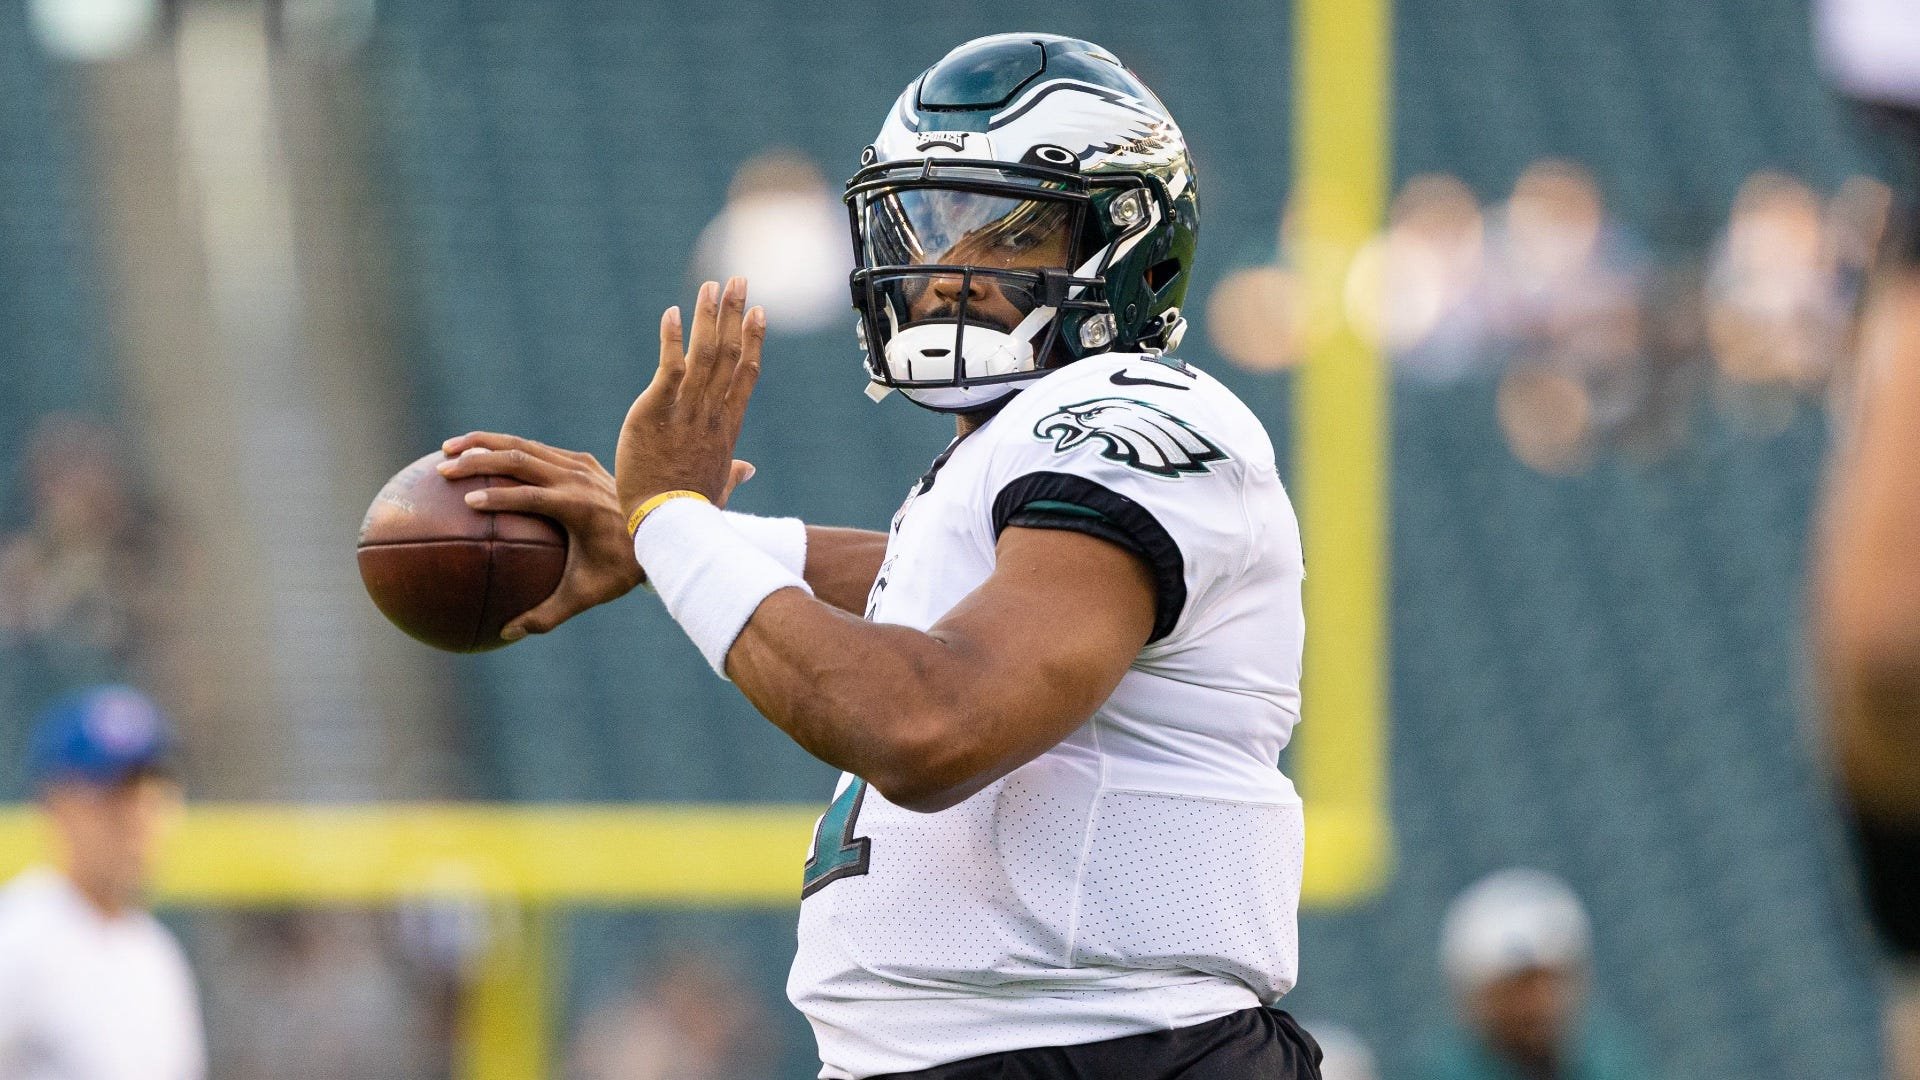 Eagles vs. Falcons: Preview and Prediction